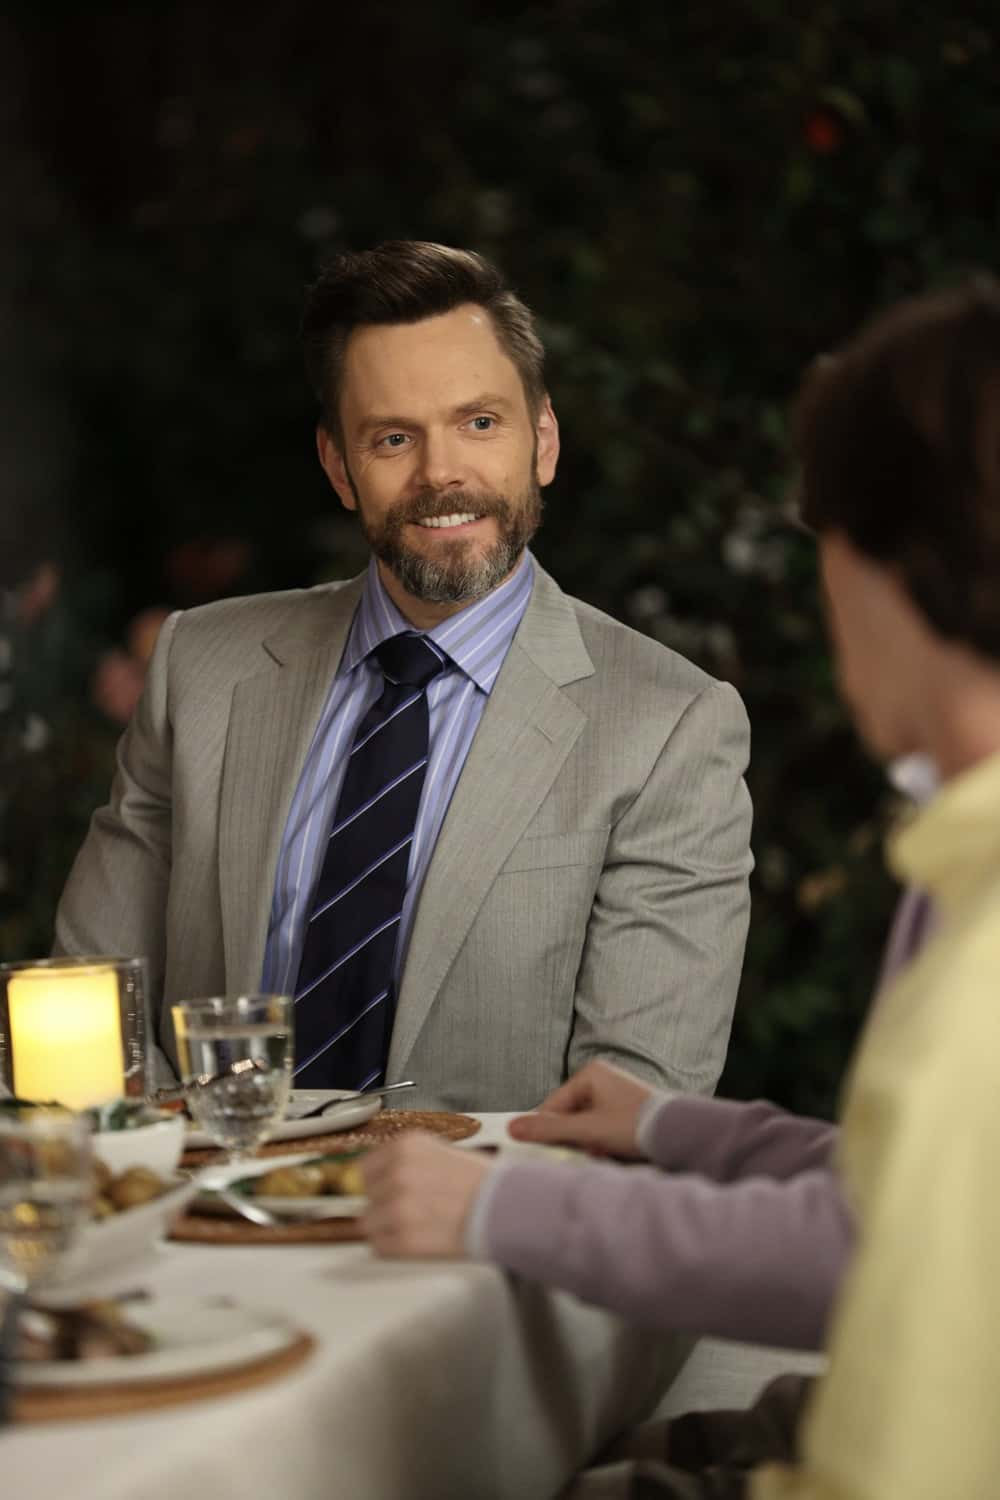 """AMERICAN HOUSEWIFE Season 5 Episode 13 - """"The Election"""" – Katie pushes Cooper (Logan Pepper) to share his passion for the culinary arts and ambition of becoming a chef with his autocratic father, Doyle Bradford (Joel McHale). Meanwhile, Greg and Principal Ablin (Jerry Lambert) go head-to-head when the election results offer an interesting twist. And the Otto family gets the surprise of a lifetime on the season finale of """"American Housewife,"""" WEDNESDAY, MARCH 31 (8:30-9:00 p.m. EDT), on ABC. (ABC/Raymond Liu) JOEL MCHALE"""